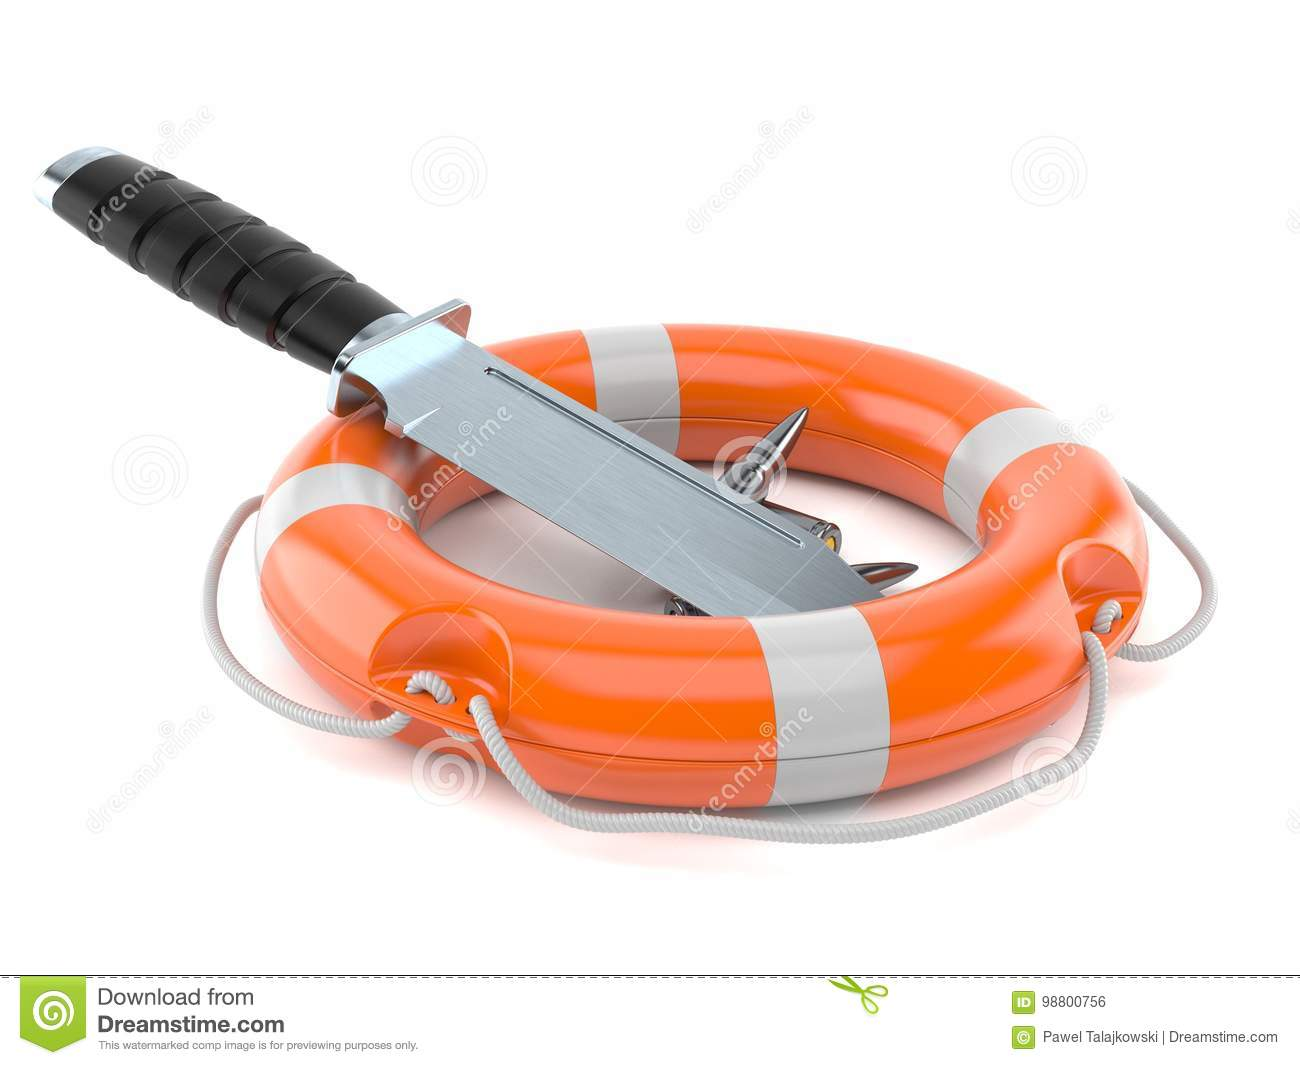 Knife with ammunition and life buoy